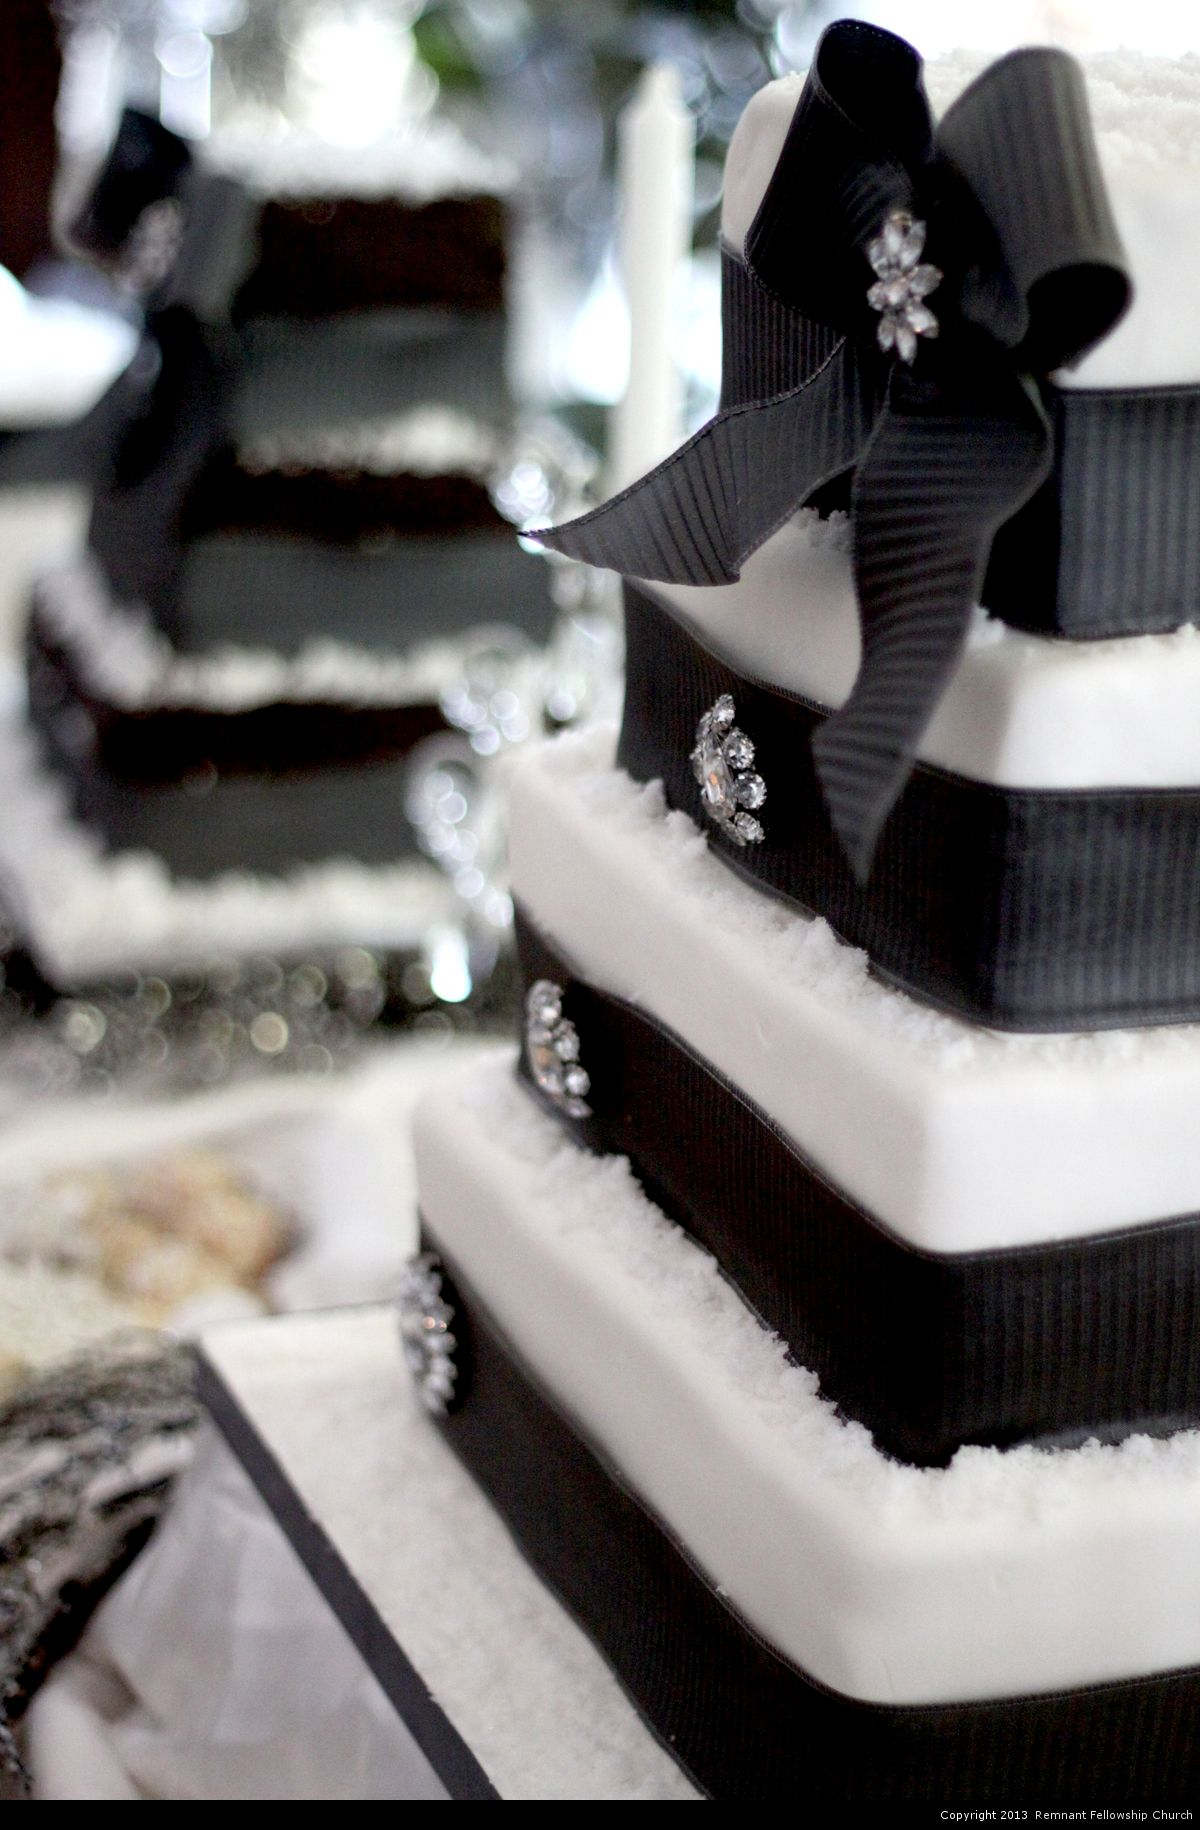 Winter Wedding Cake | Square Tiered Wedding Cake with Black Ribbon and Gem Accents